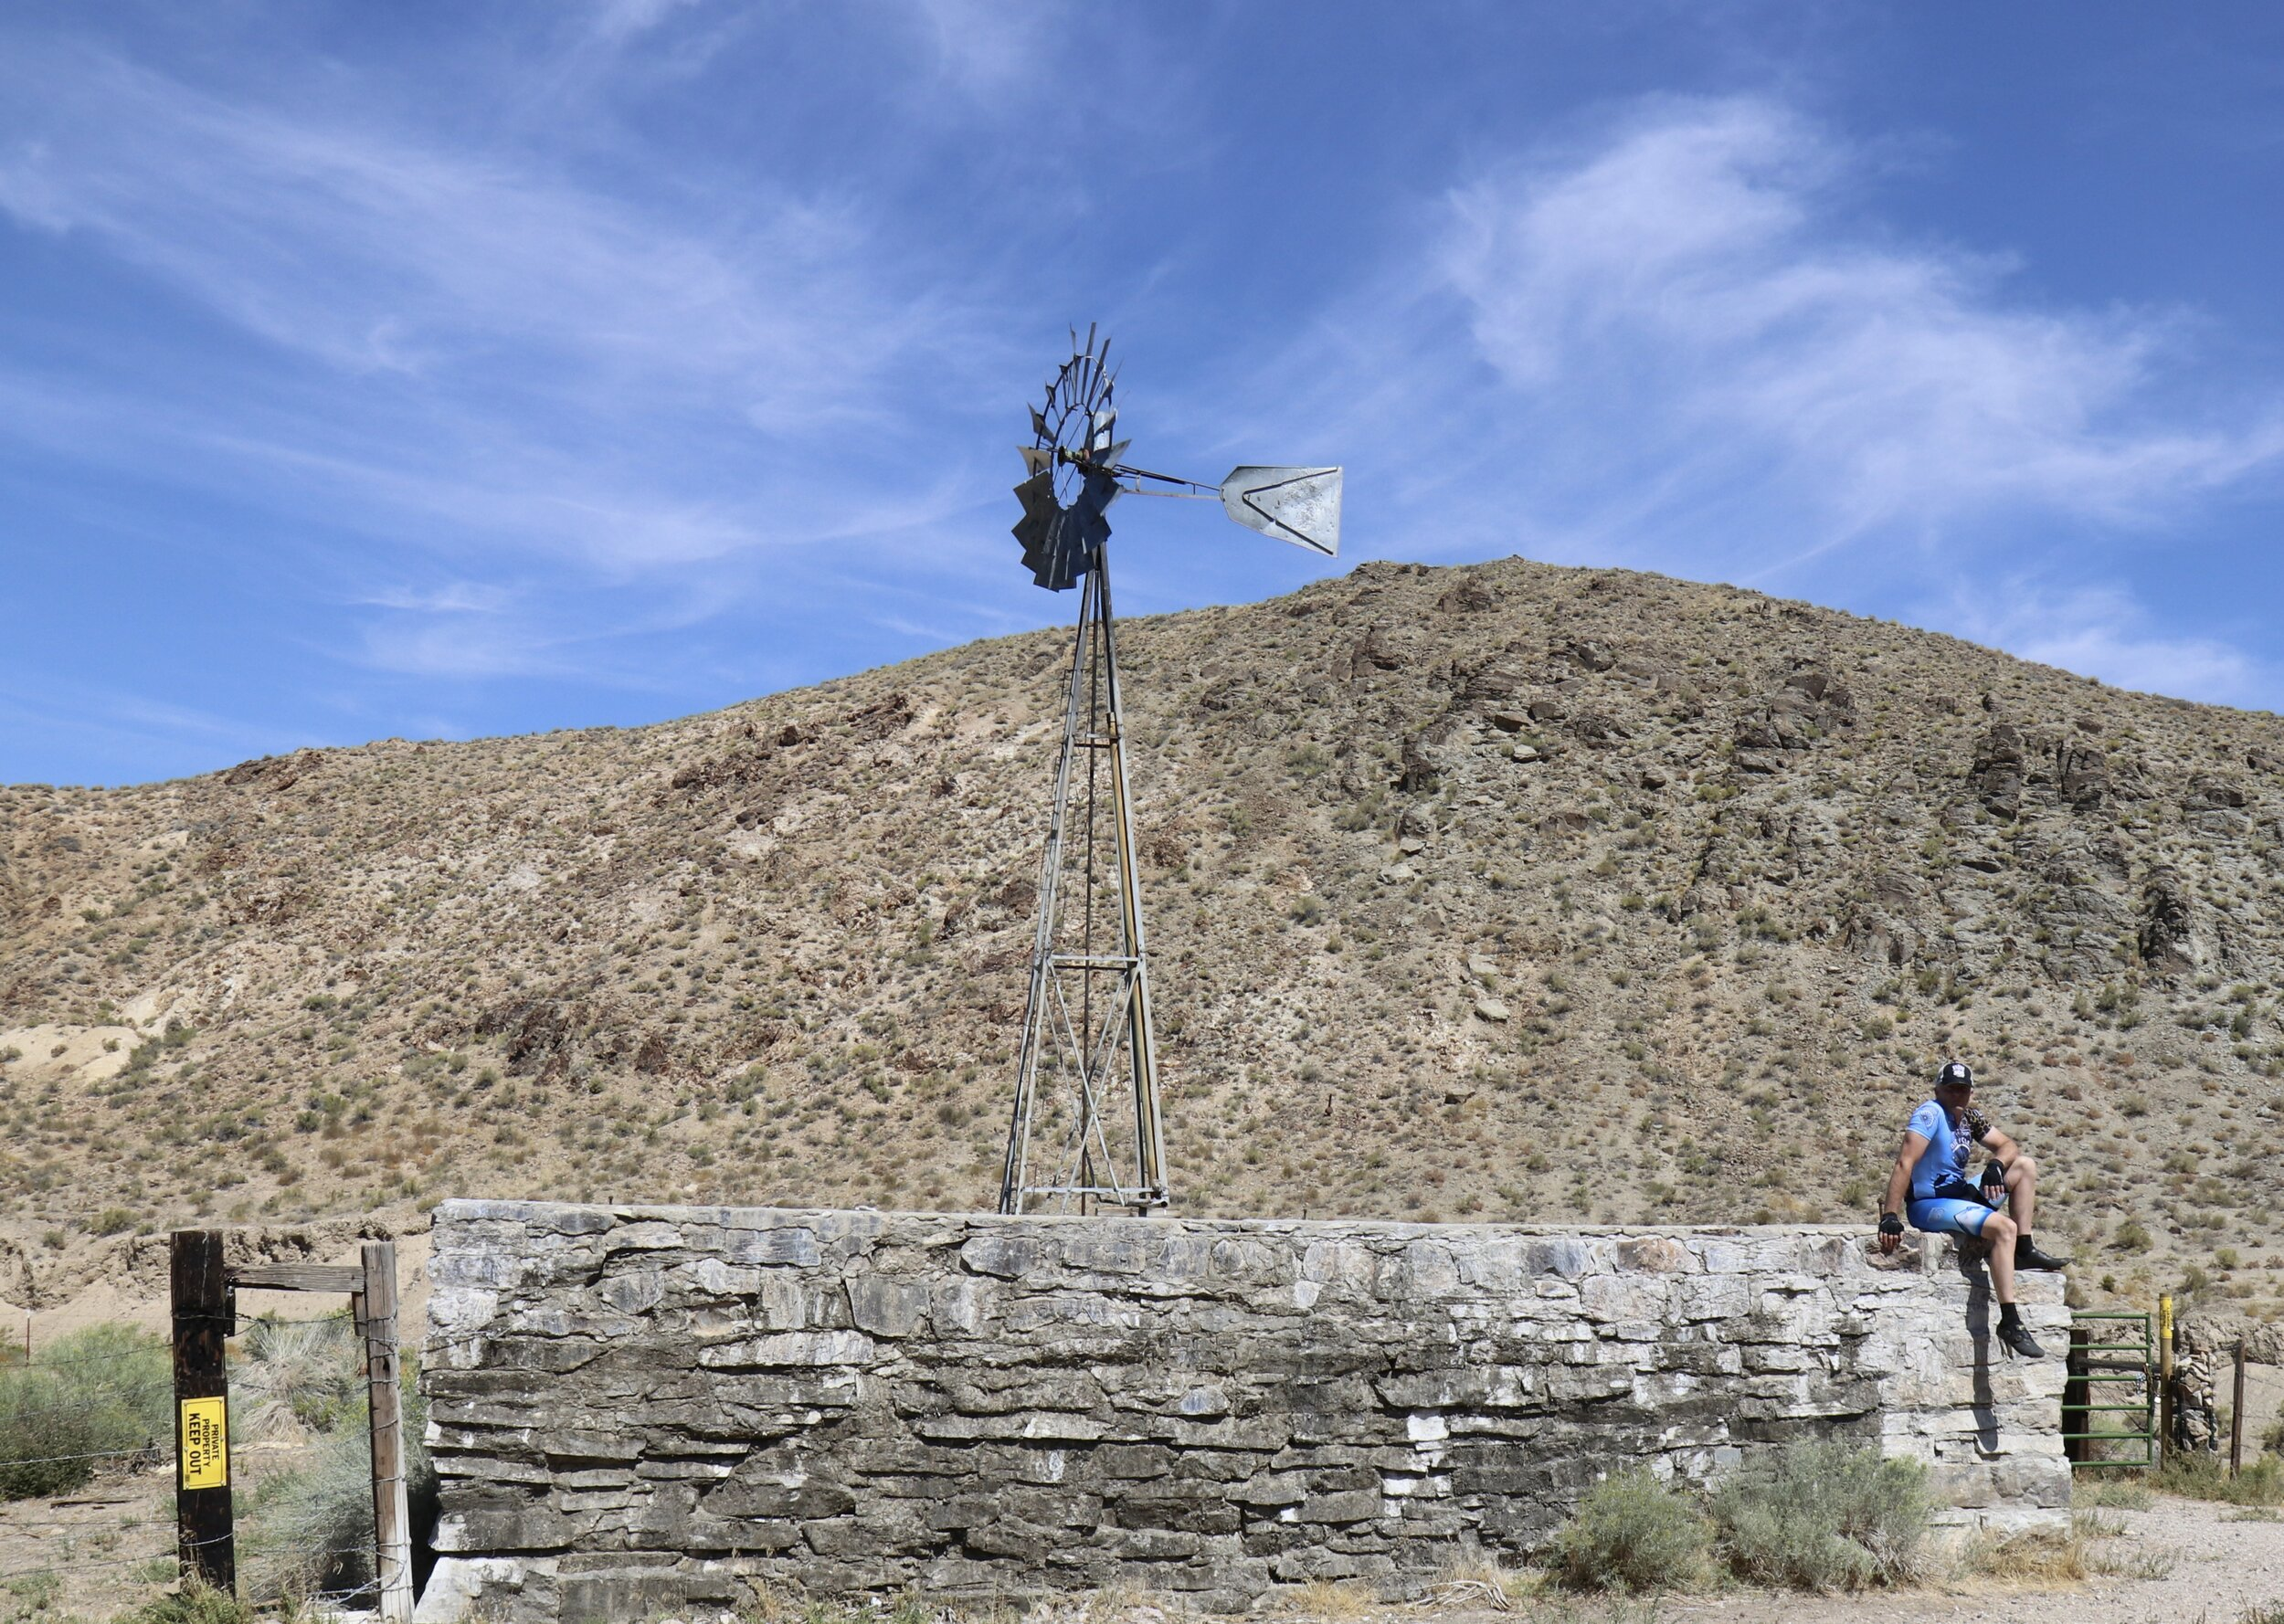 Me sitting on the edge of a huge water retention basin filled by the windmill on the Pony Express Route across Nevada.